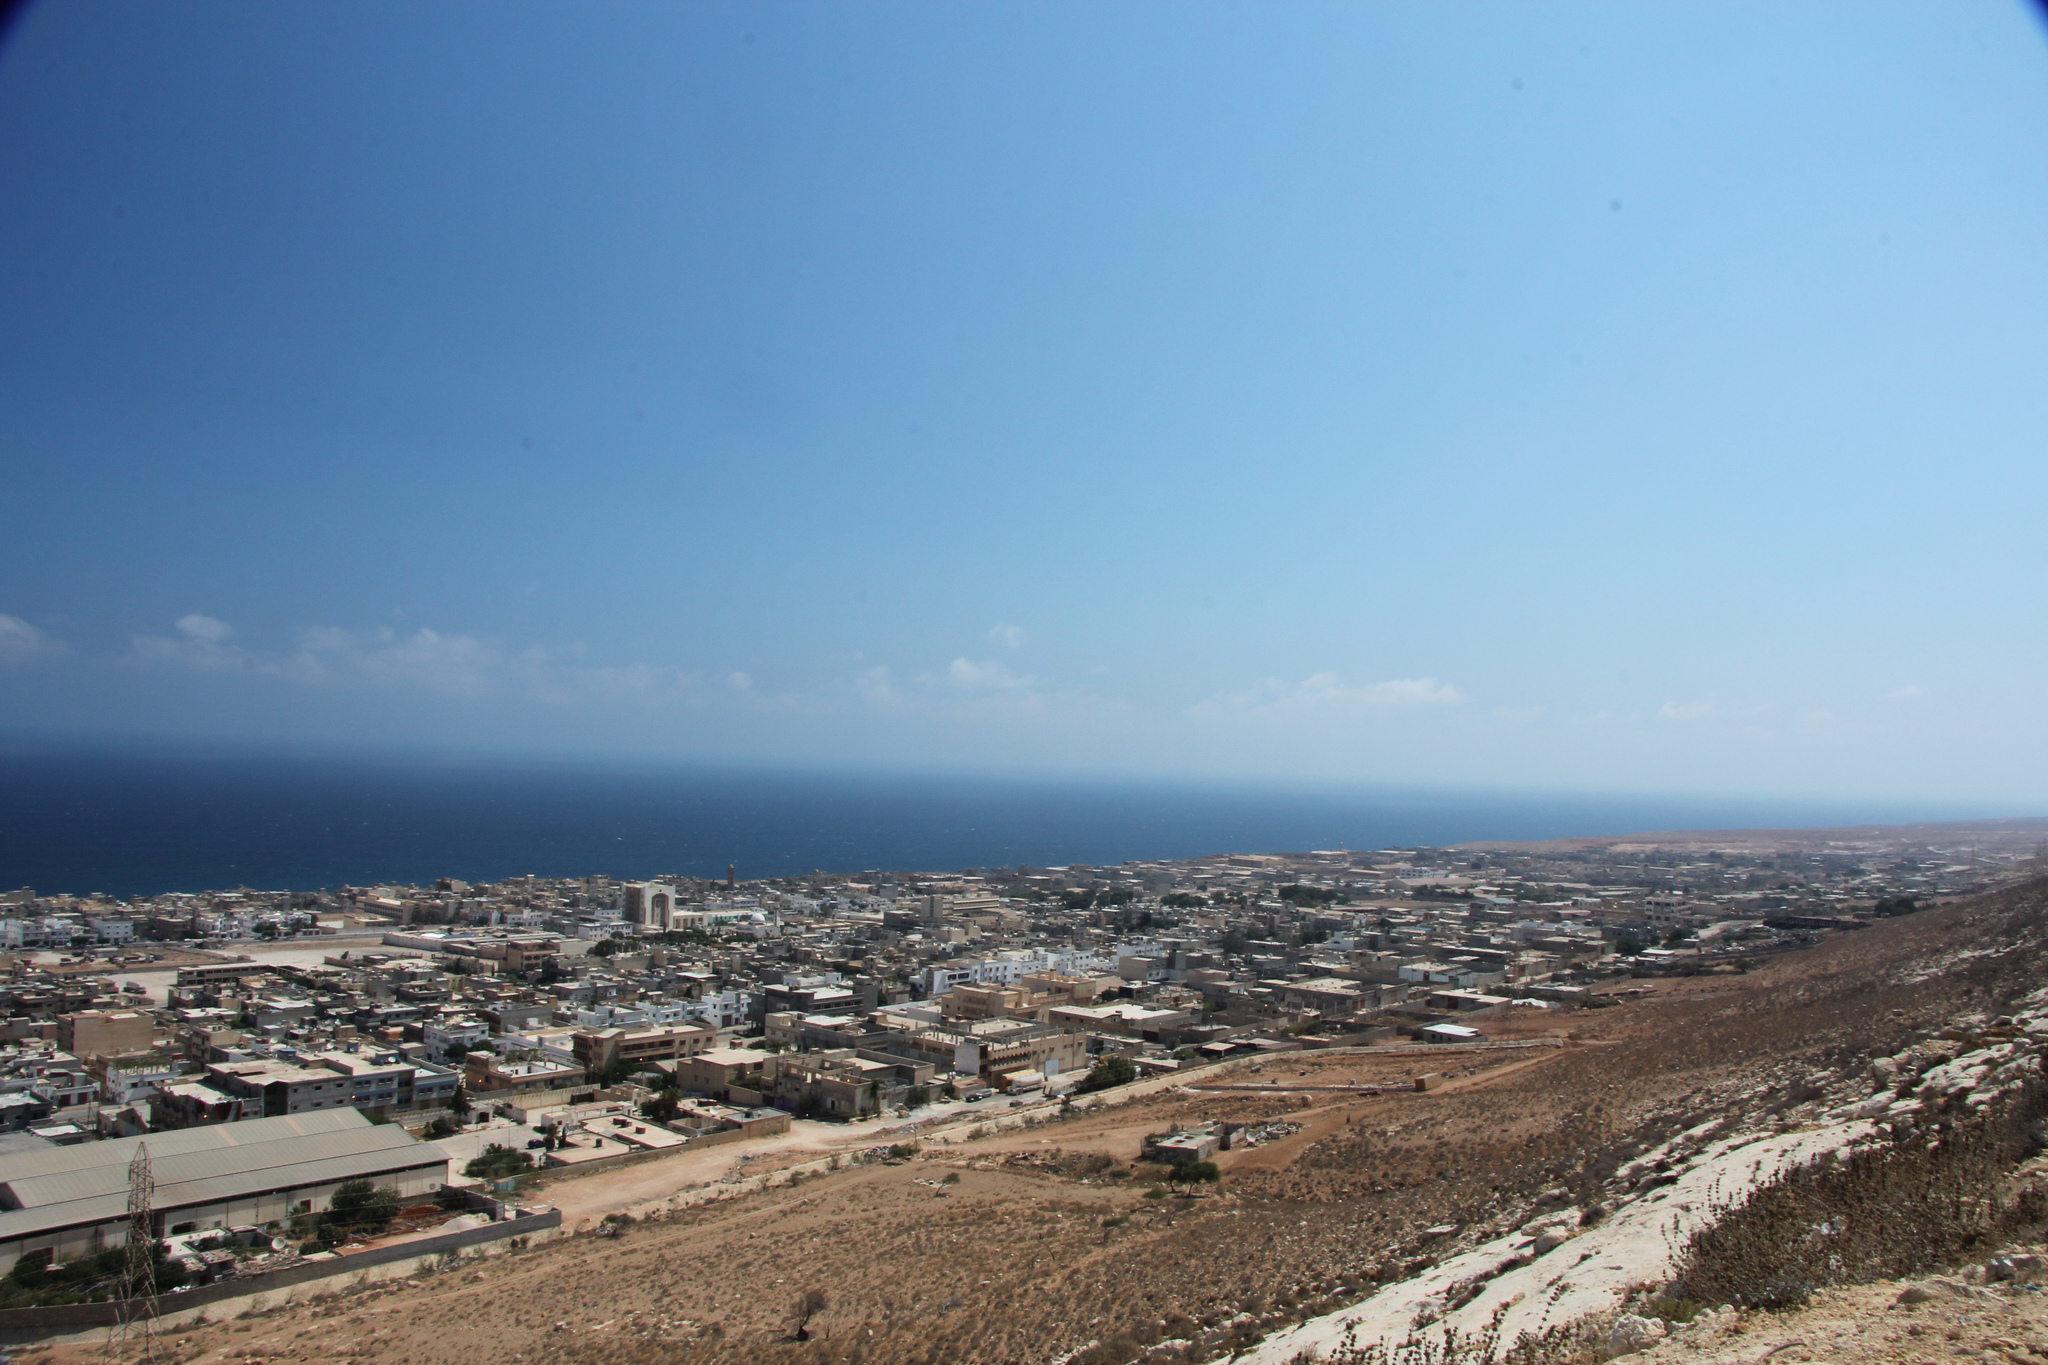 The Libyan costal city of Derna has been under militarily encirclement since July 2017. (Picture: Creative Commons)